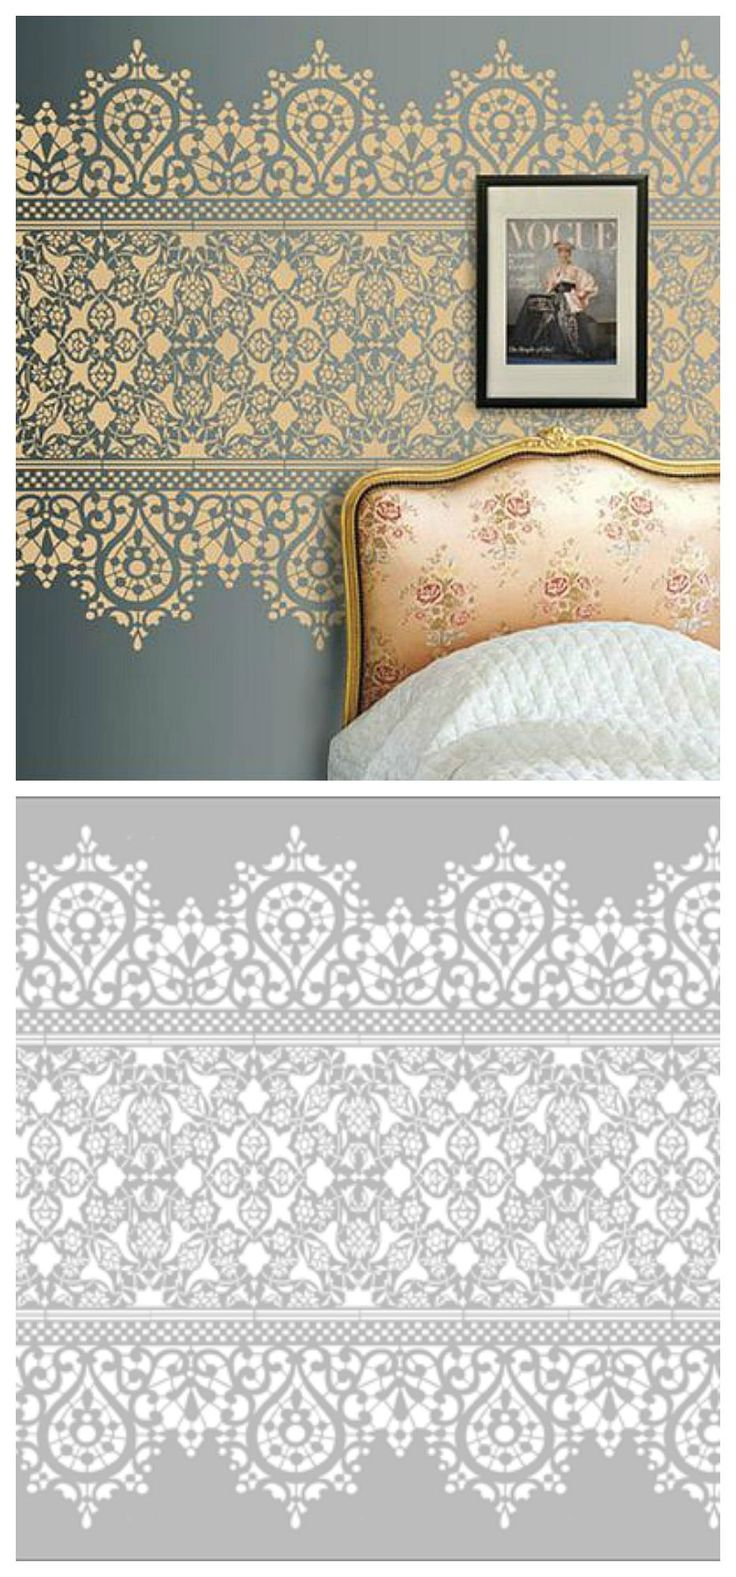 25 unique wall stenciling ideas on pinterest diy stenciled wall stencil lace wall stencil amipublicfo Image collections